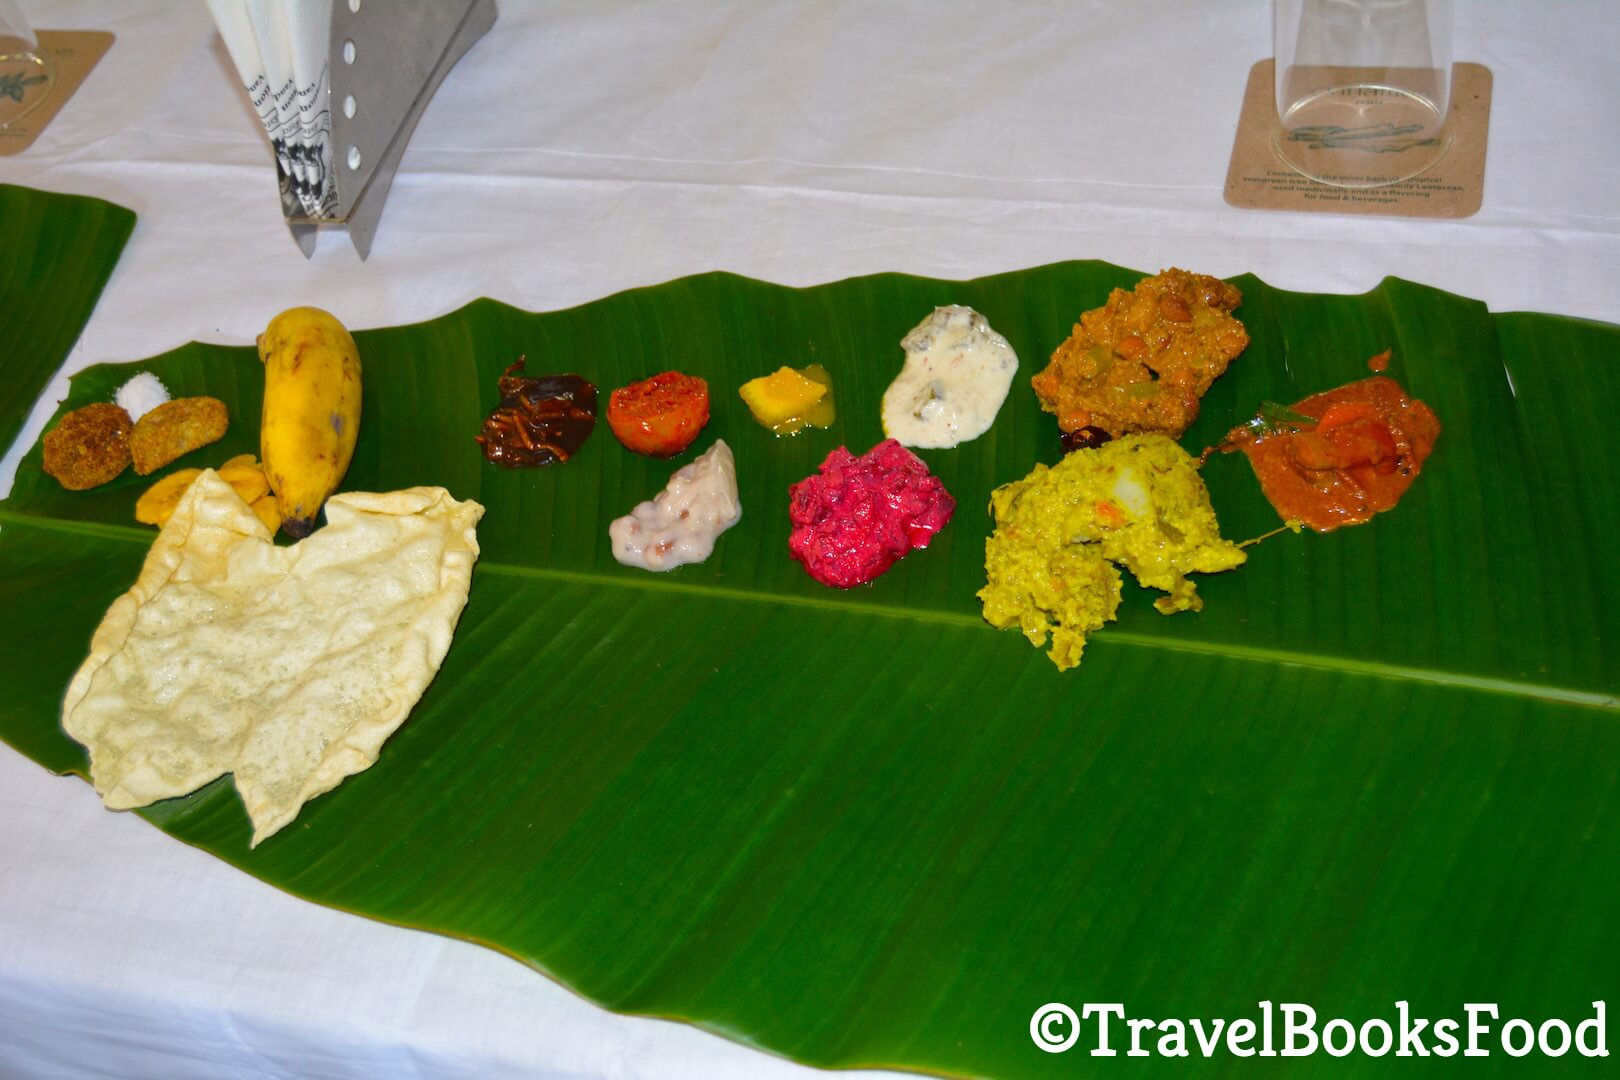 Photo of a traditional Kerala Vegetarian Meal (Sadhya) served in a green plantain leaf. There are at least 12-14 types of foods in this photo.